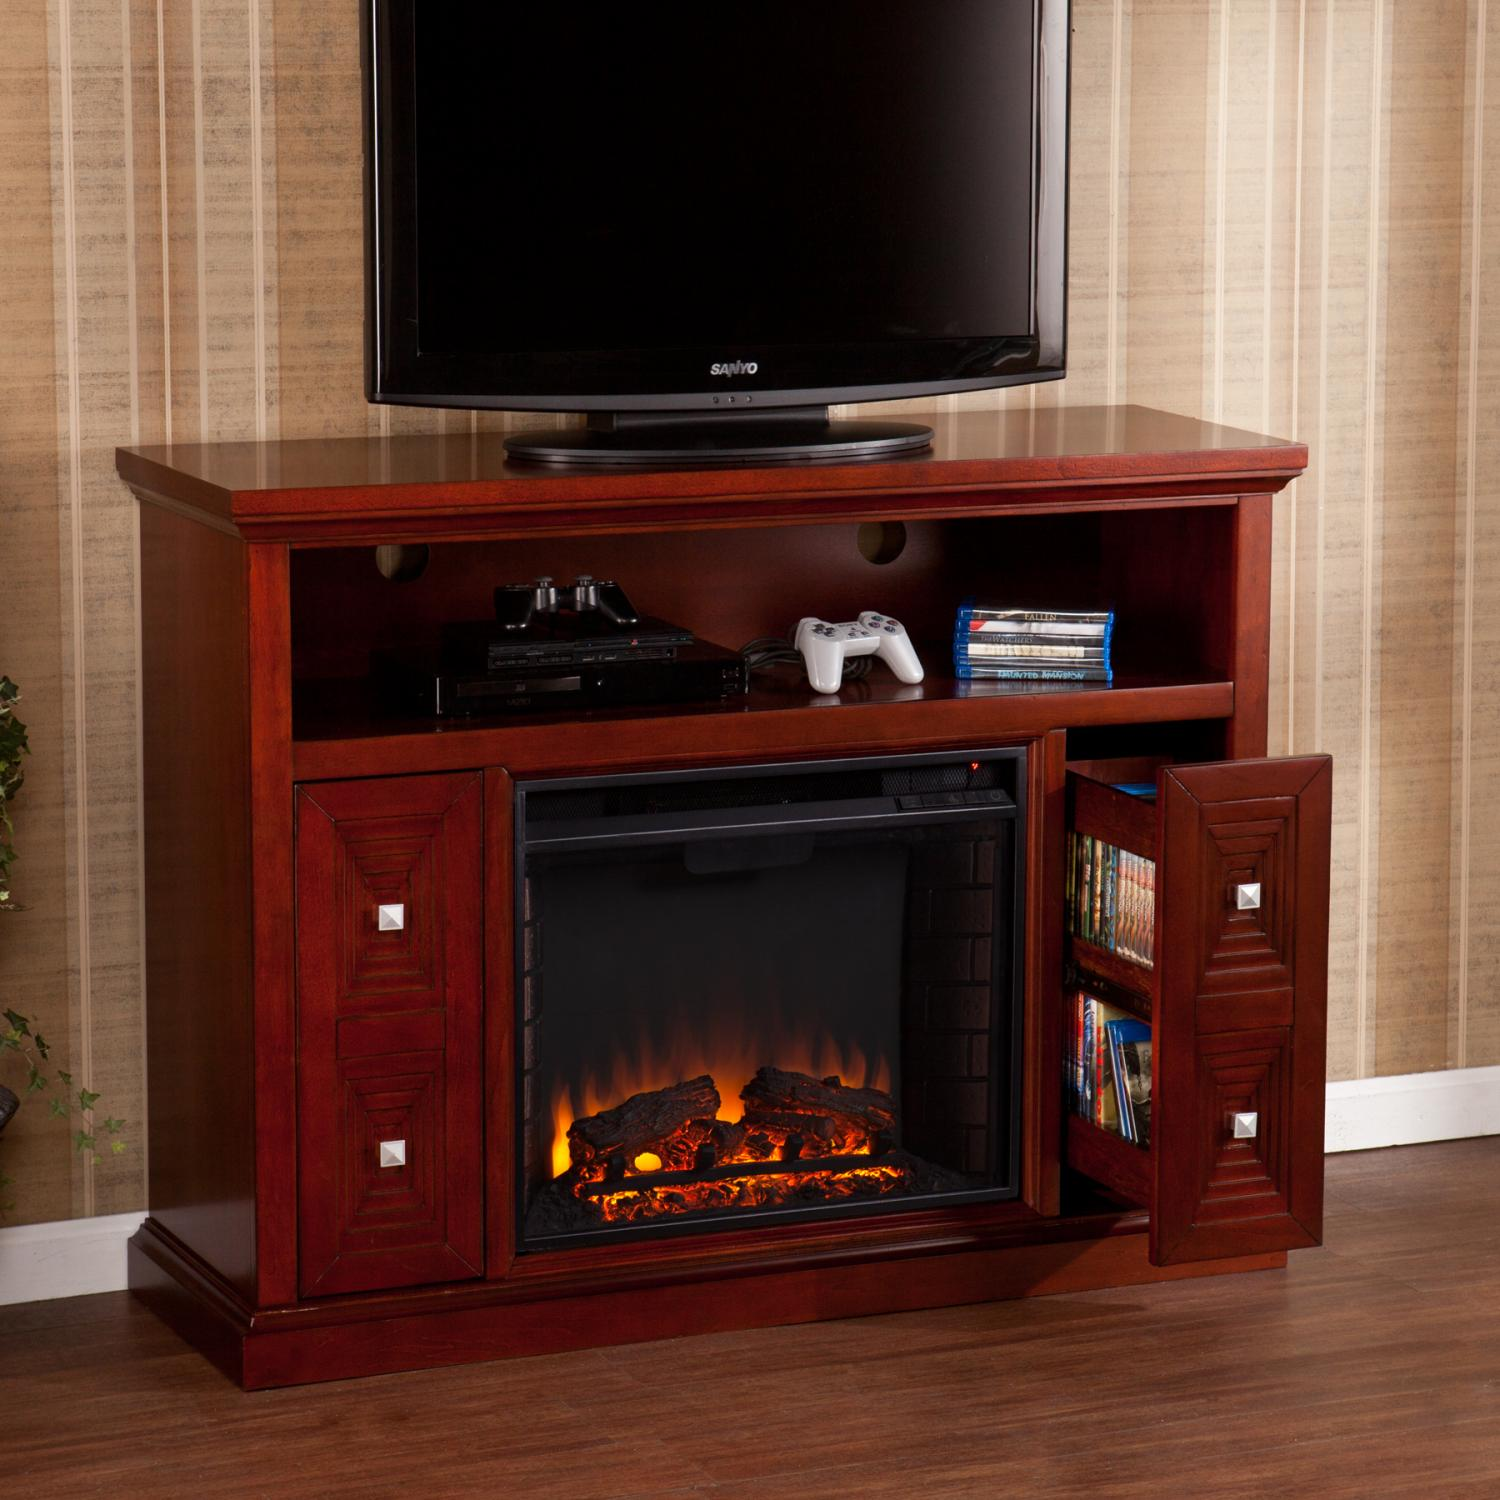 Cherry Wood Dvd Storage Cabinet The Best Selection Of Cddvd Storage Available In Cabinets Racks